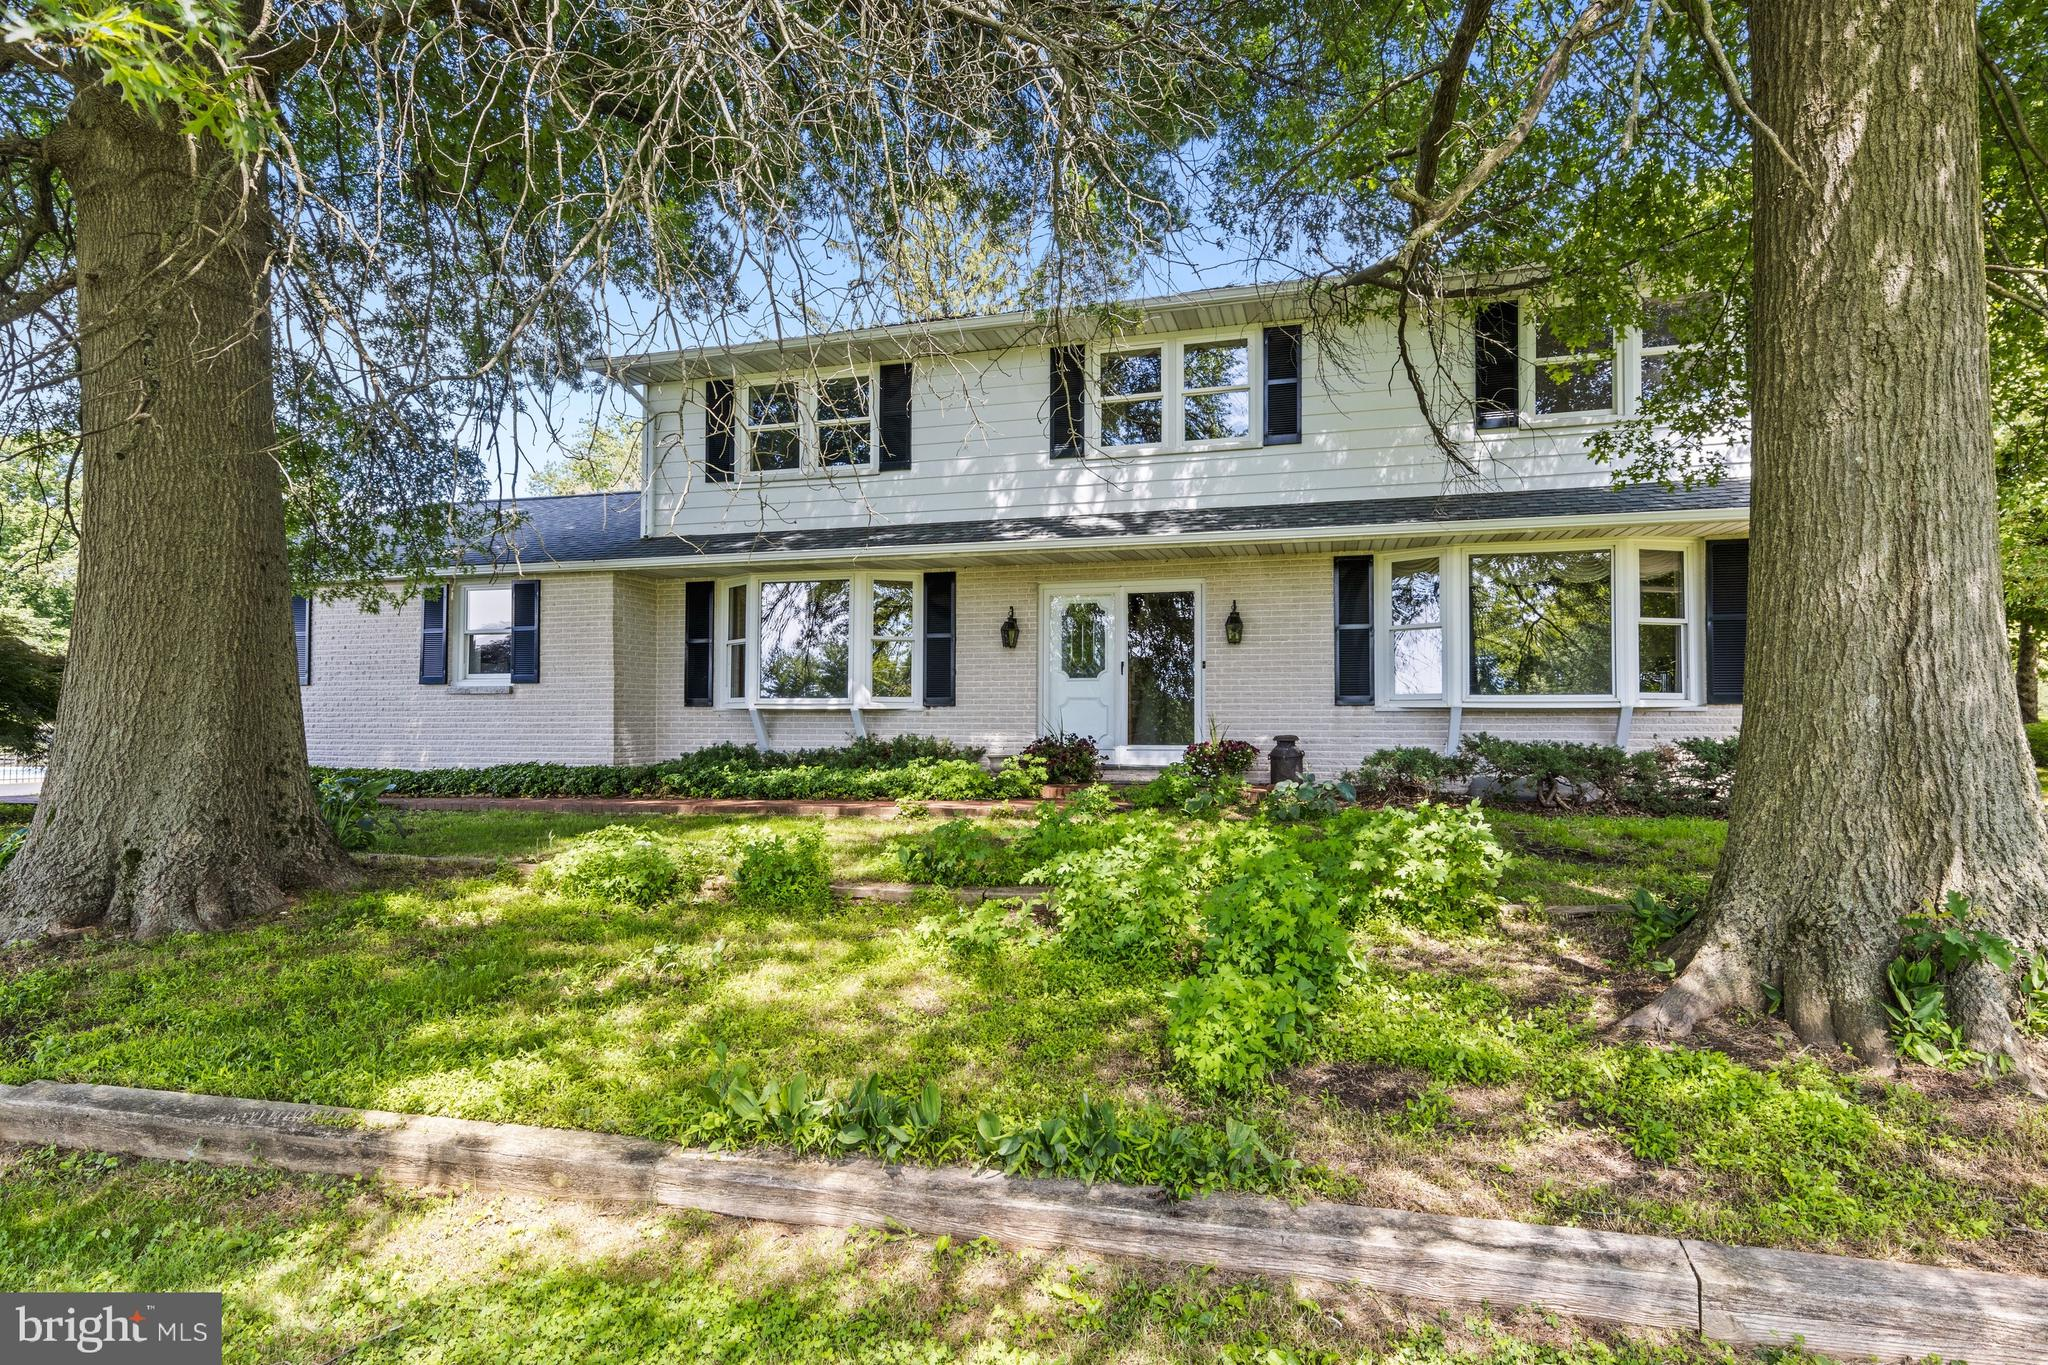 **Open House** Sunday, July 11, 11:00am-1:00pm      High on a hill in Hockessin, on the edge of nature, yet so conveniently close to Hockessin, Pike Creek, Wilmington and Newark, exists a uniquely different property. Two dwellings are set on this 3.68 acre property.  The 3,540 sqft main family residence is an over-sized 4 bedroom, 3 full bath Colonial home. The second dwelling is a 2 or 3 bedroom, 1 full bath guest house with 1,279 sqft, currently being used as a home office.  There are 4 garages and ample parking. The most outstanding feature is the outdoor space. Whether enjoying time with family or hosting lavish events, it is the ideal location for any occasion. The backyard was envisioned as an entertainment mecca for friends, family or quiet evenings enjoyed from the three-season room or the patio next to the enchanting koi pond. Experience tranquil nights and superior sunsets from the private pool deck and cabana surrounded by fragrant Zephyr rose bushes. The in-ground swimming pool has been re-plastered with new coping, filter, and pump and was converted to salt water in 2018. In addition to mature foliage such as black oak trees, magnolia bushes, pink dogwoods, cherry trees and Japanese maples, the current owners used a portion of the 3.68 acres as a blackberry farm which yielded an annual crop of pick your own blackberries. Recent home improvements include new air conditioner with 10 year transferrable warranty, main house basement renovation with new carpet, ceiling panels and fresh paint, new sump pump, new hot water heater in guest house, newly remodeled owner's suite bathroom, kitchen, breakfast area, laundry room and lower level bathroom in main house, and 2018 roof on main house.    ** Sellers are asking that ALL offers be in by 6:00pm on Wednesday, July 14, 2021 for review. **